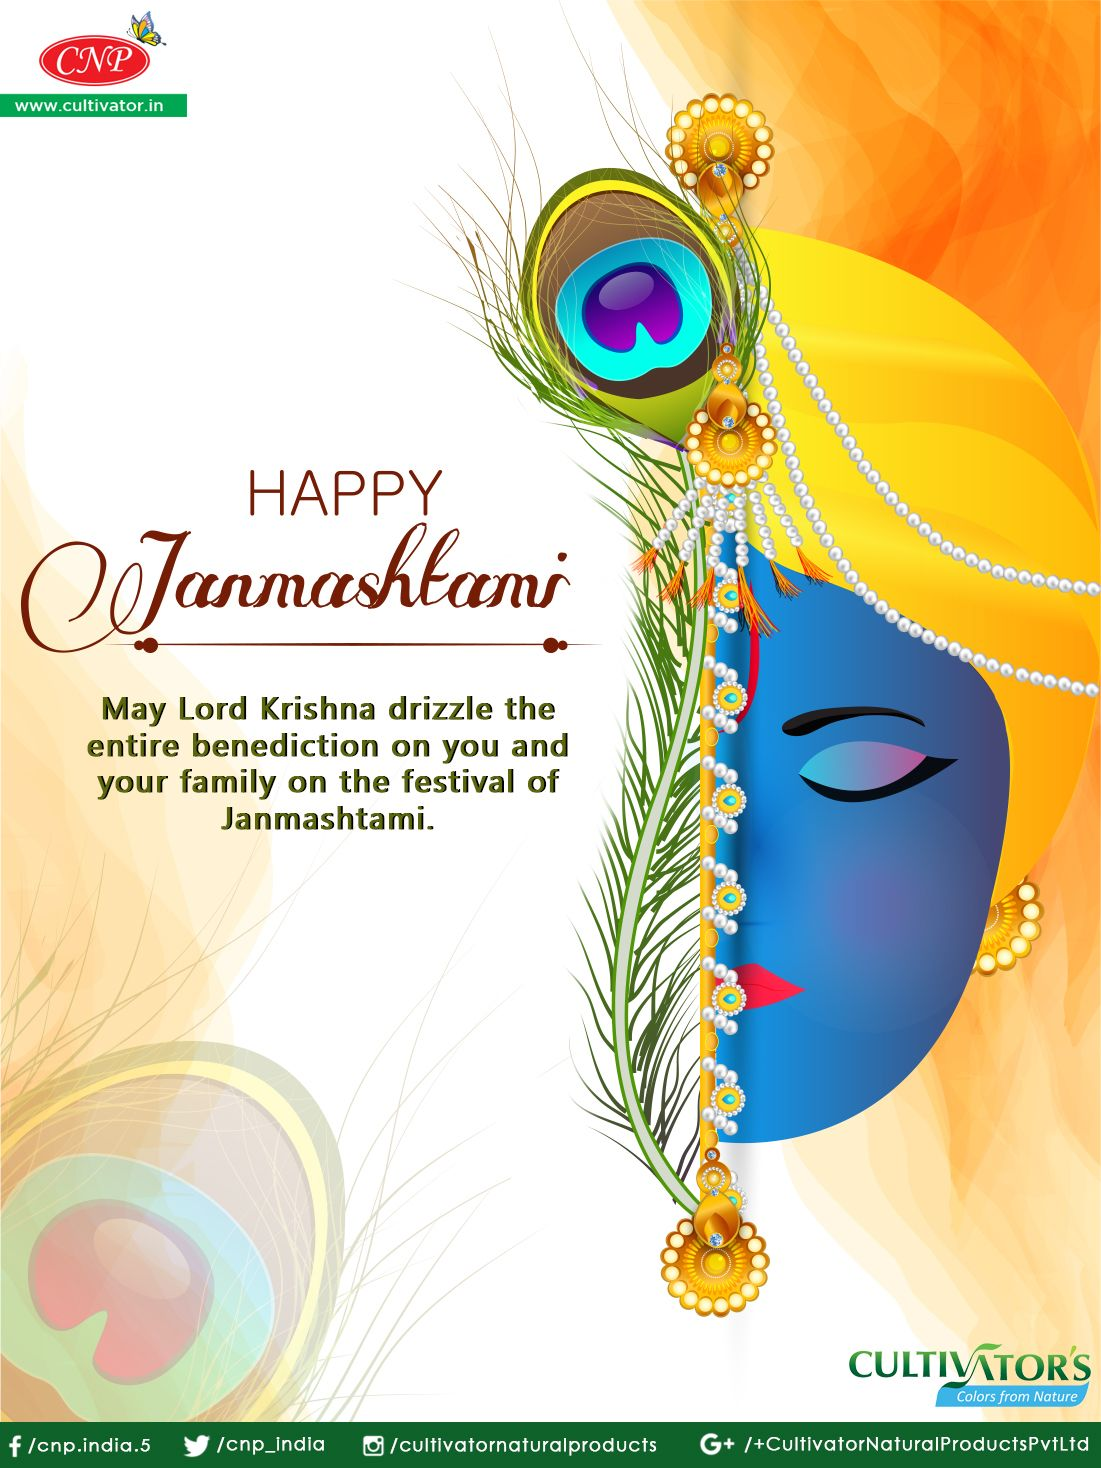 Greetings and best wishes from CNP on the holy occasion of